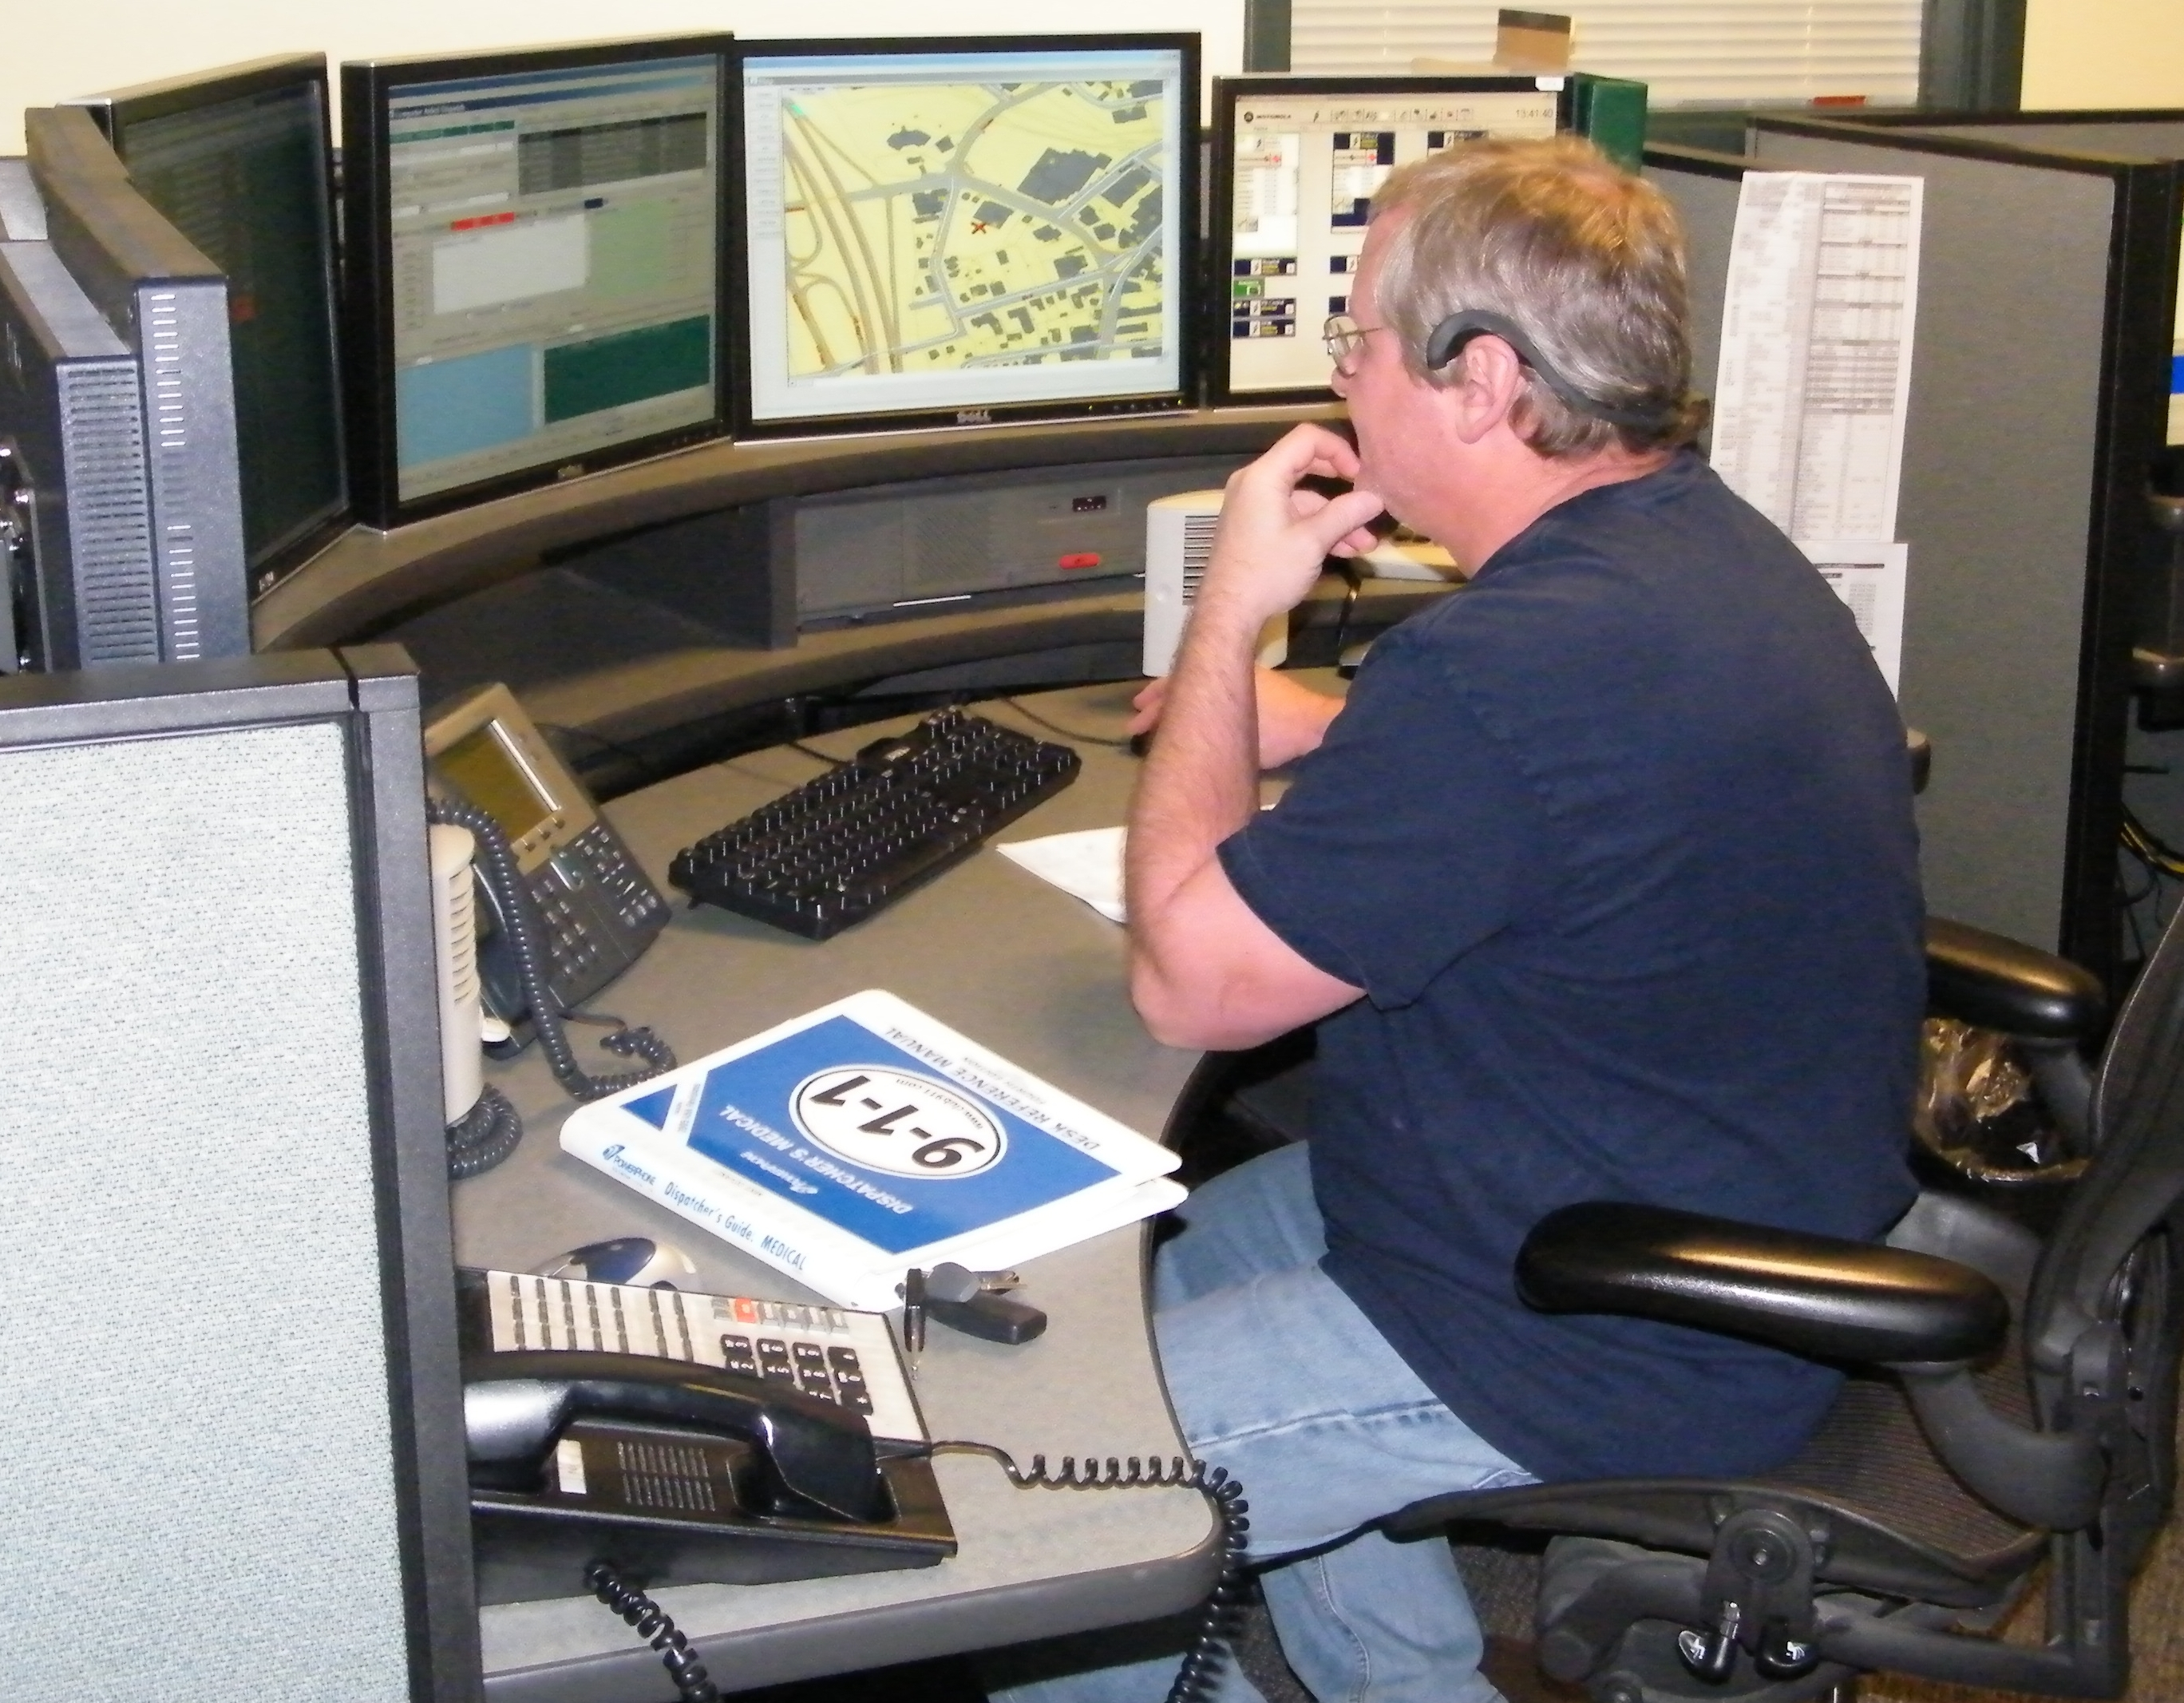 Combined Dispatch employee at a work station